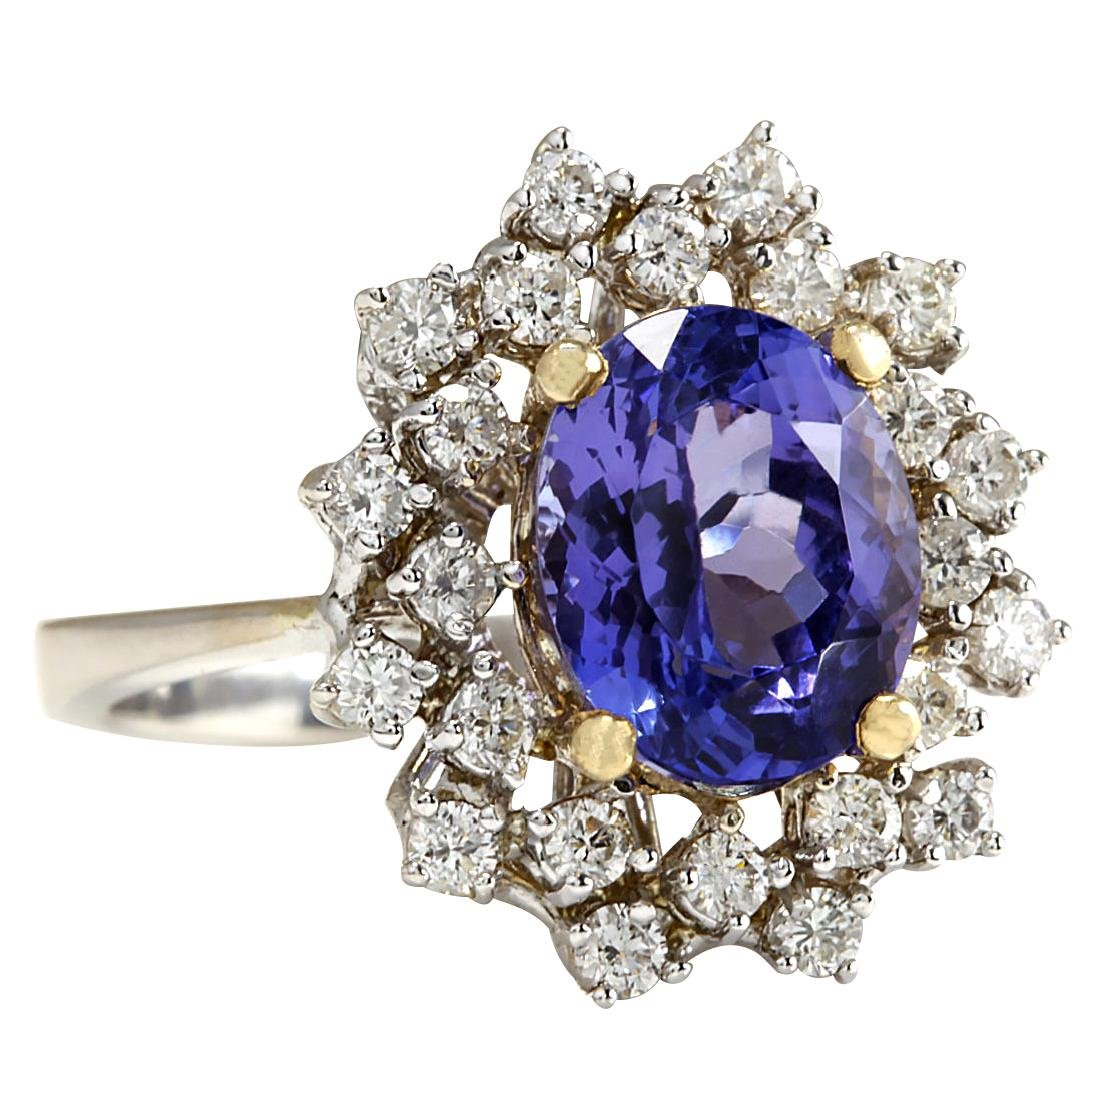 5.20CTW Natural Tanzanite Diamond Ring 18K Solid White - 2